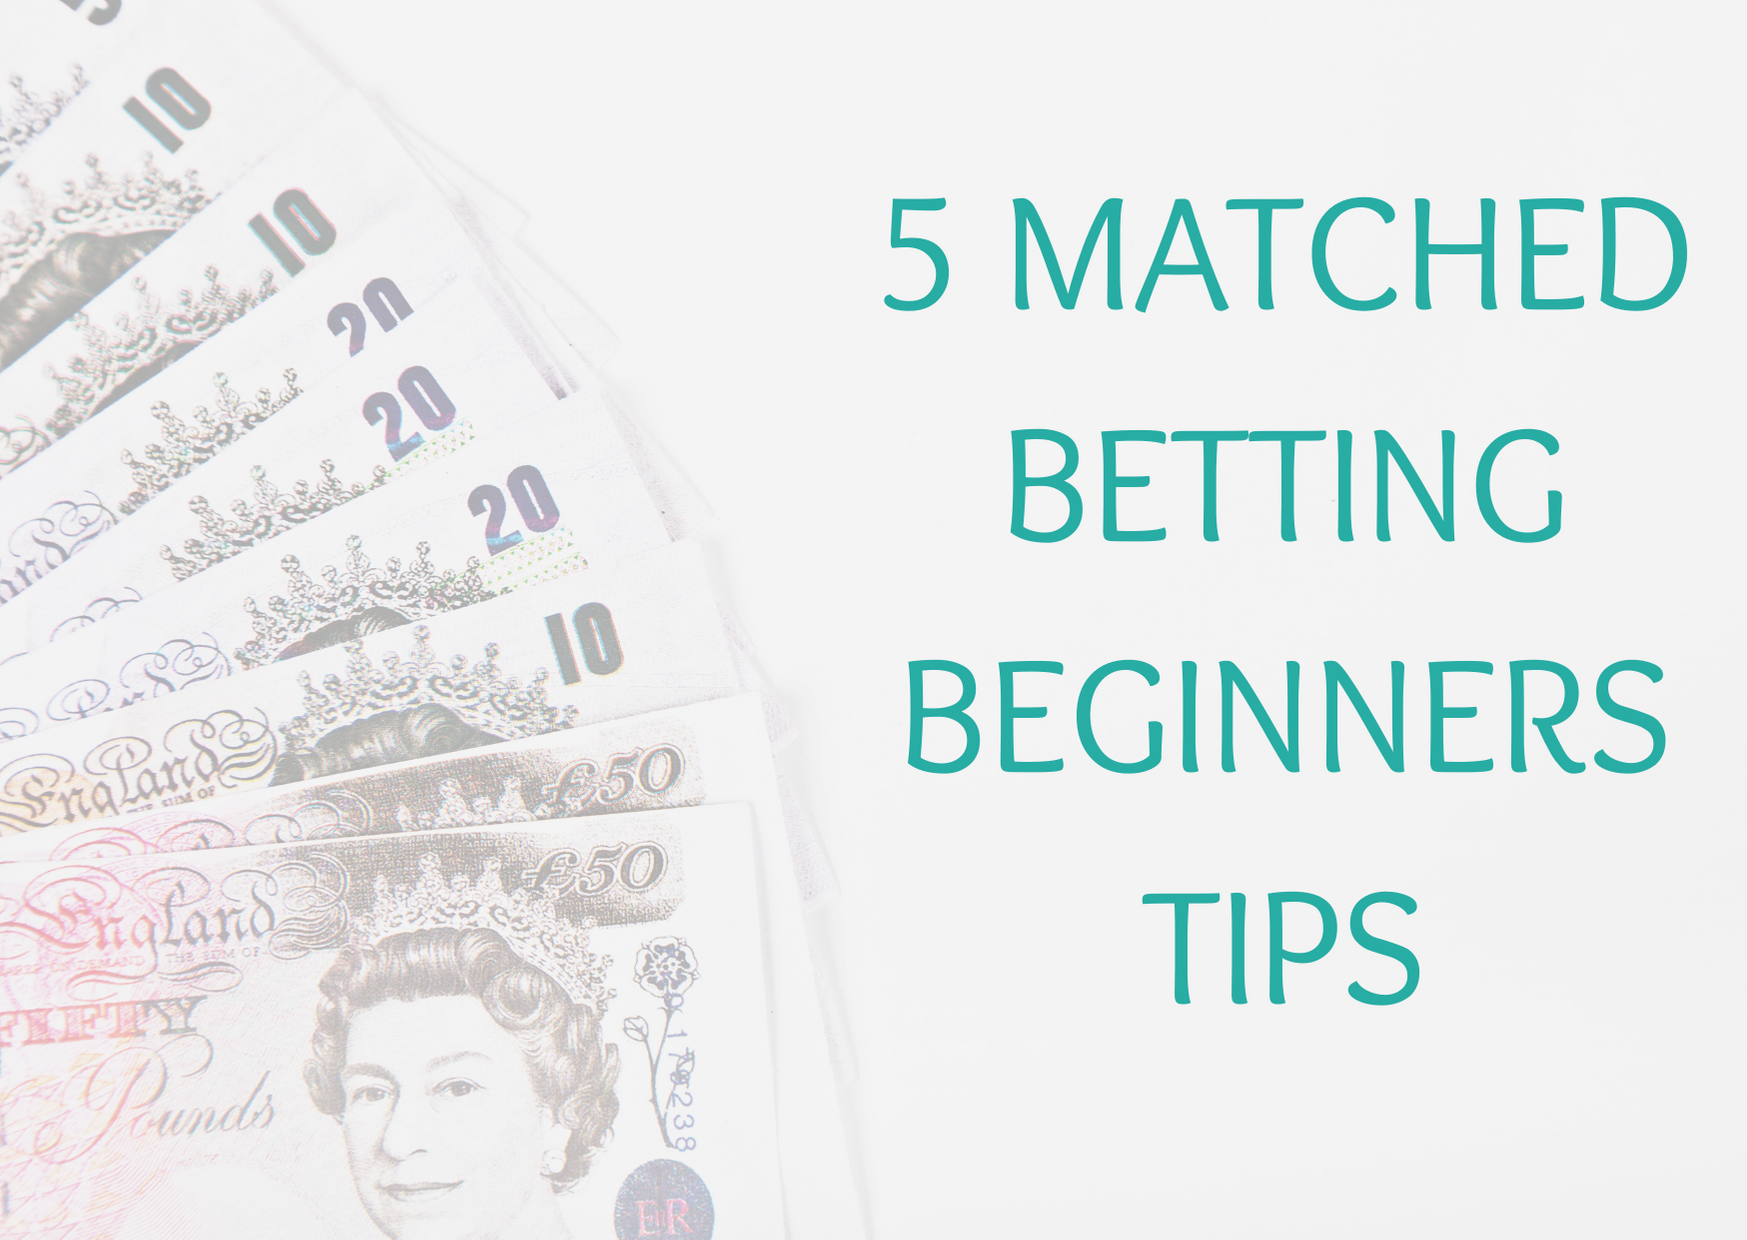 5 matched betting beginners tips